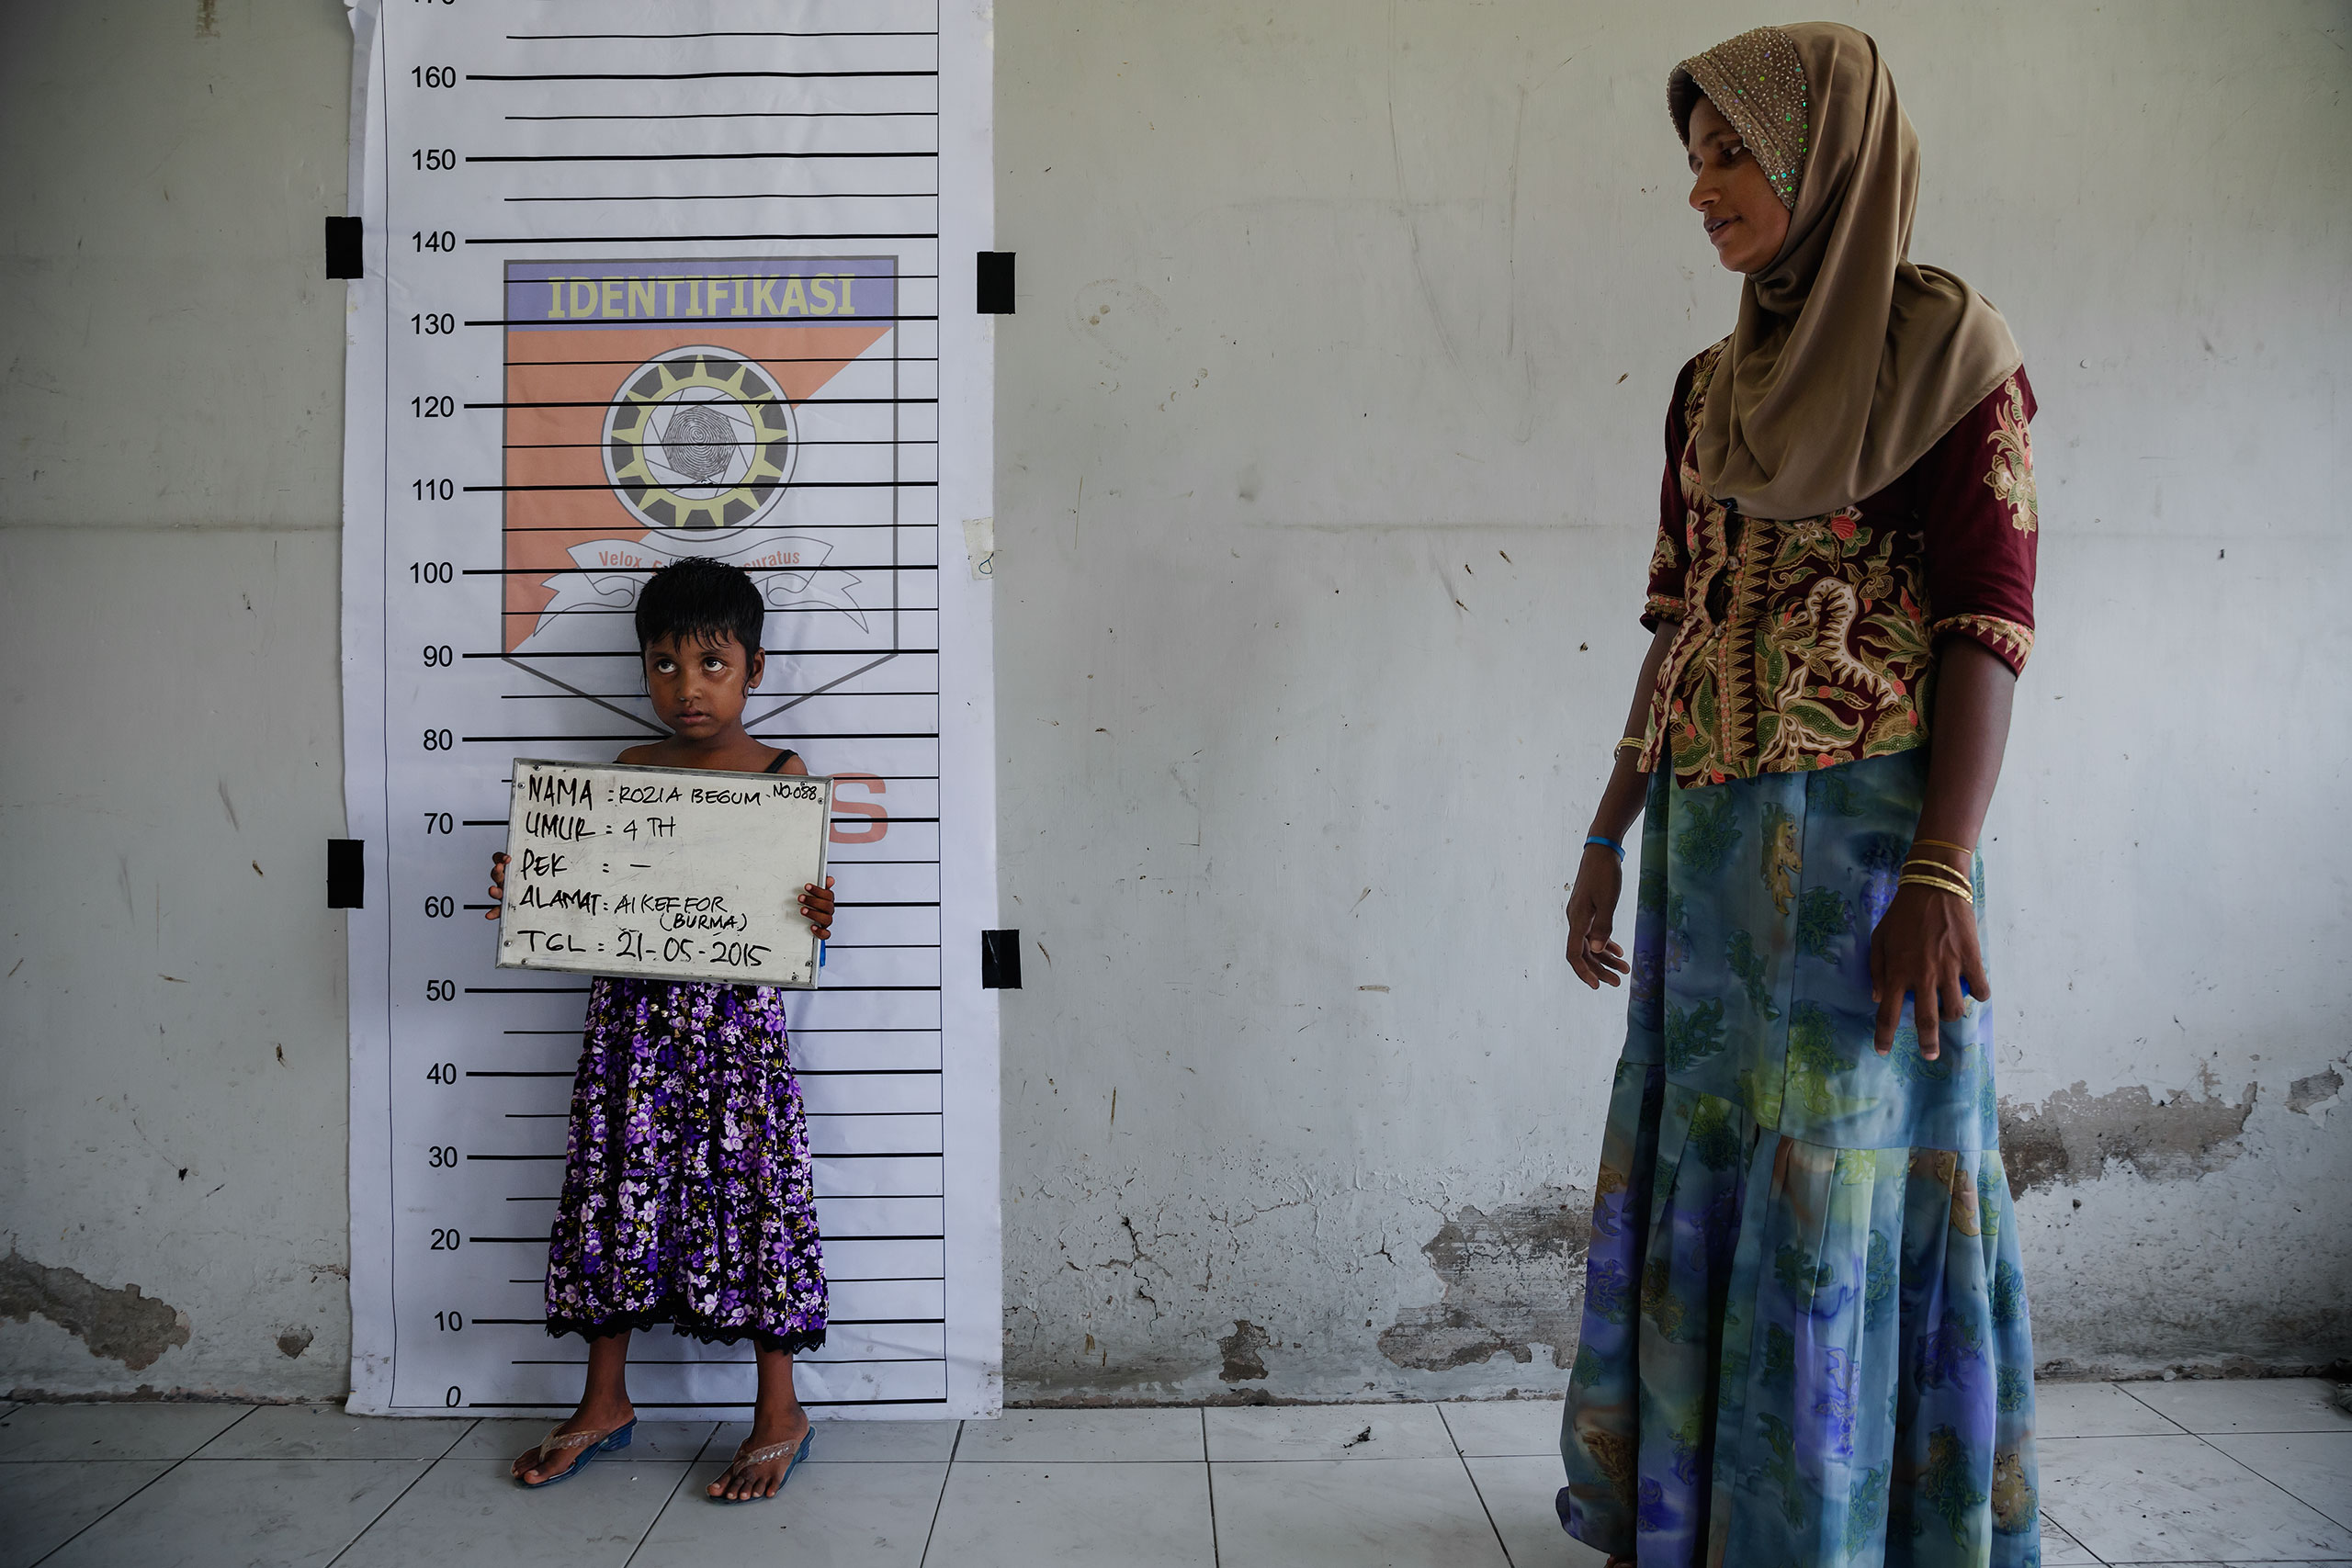 A Rohingya child is registered at a temporary shelter in Indonesia.From  The Plight of the Rohingya by James Nachtwey